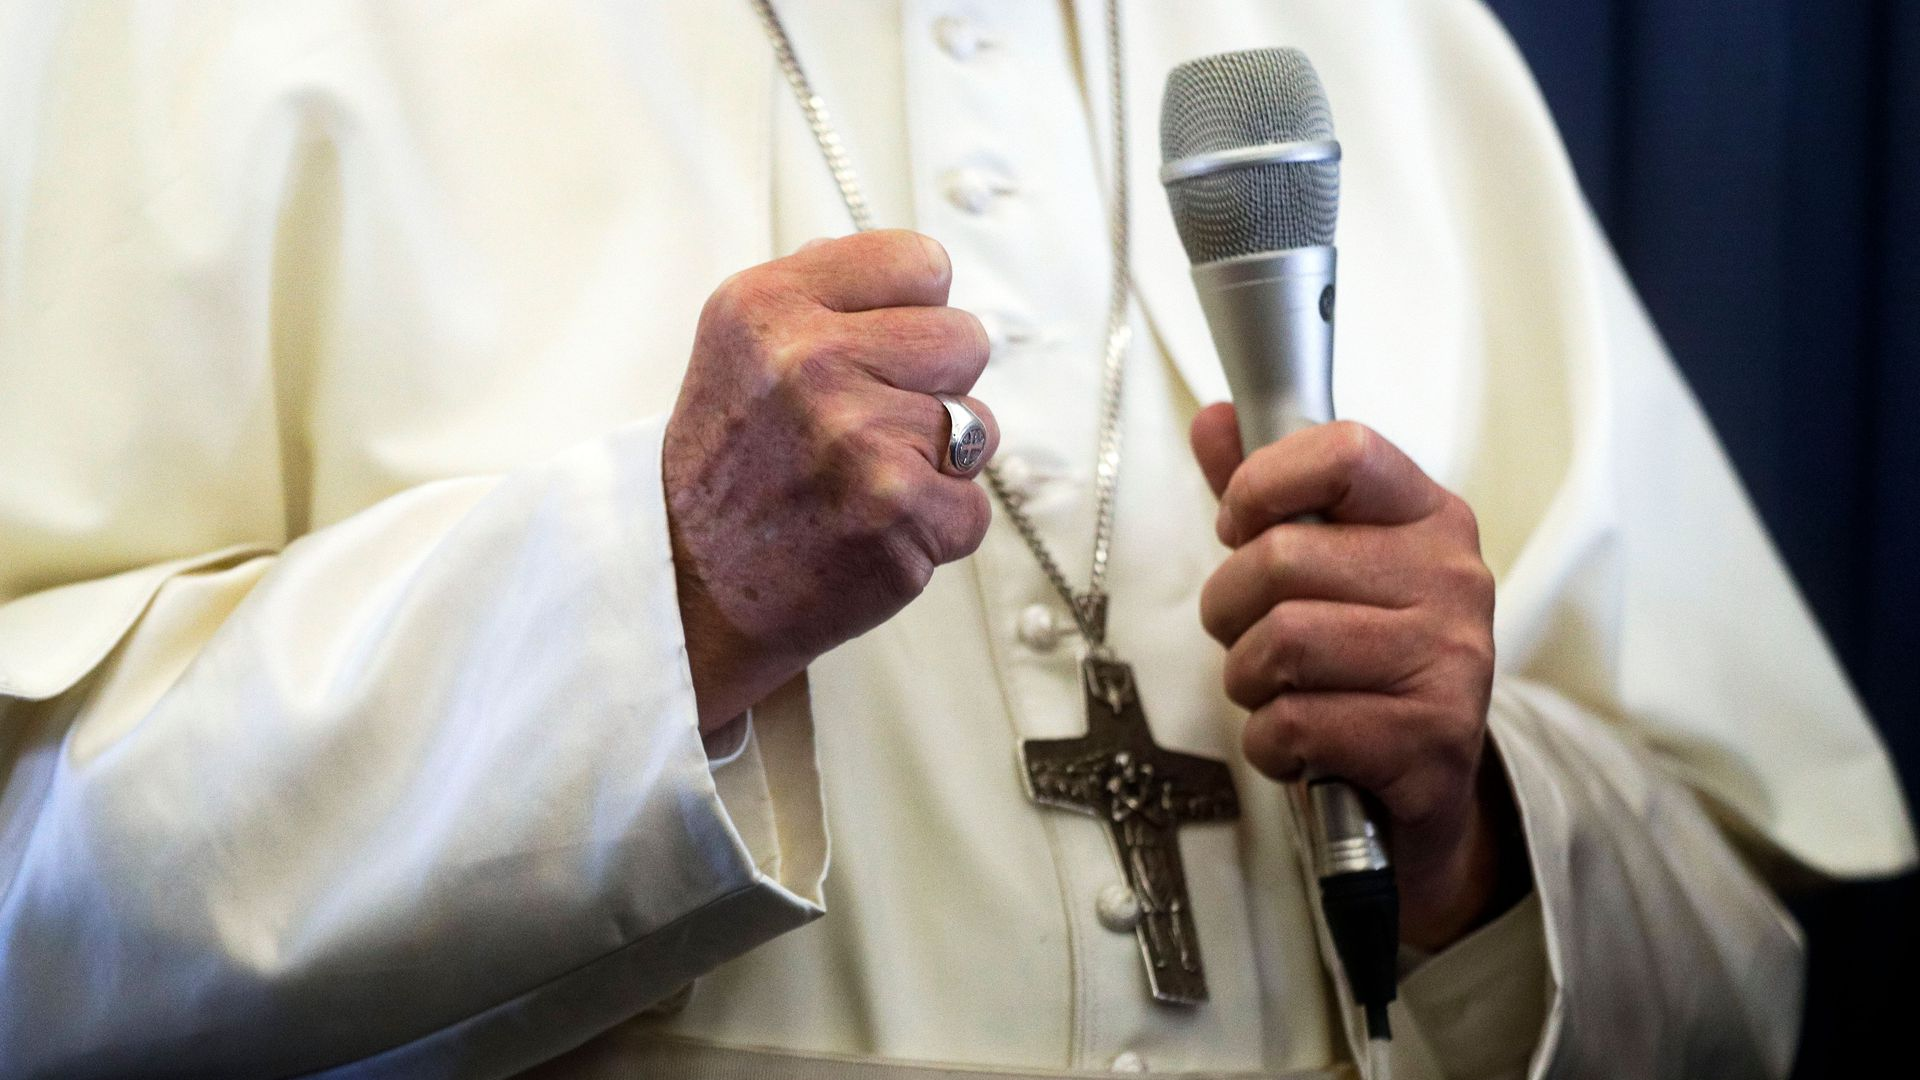 A shot of the pope's hands and robes, but not his face. One hand is in a fist, one hand holds a microphone. A crucifix necklace hangs on his white robes.